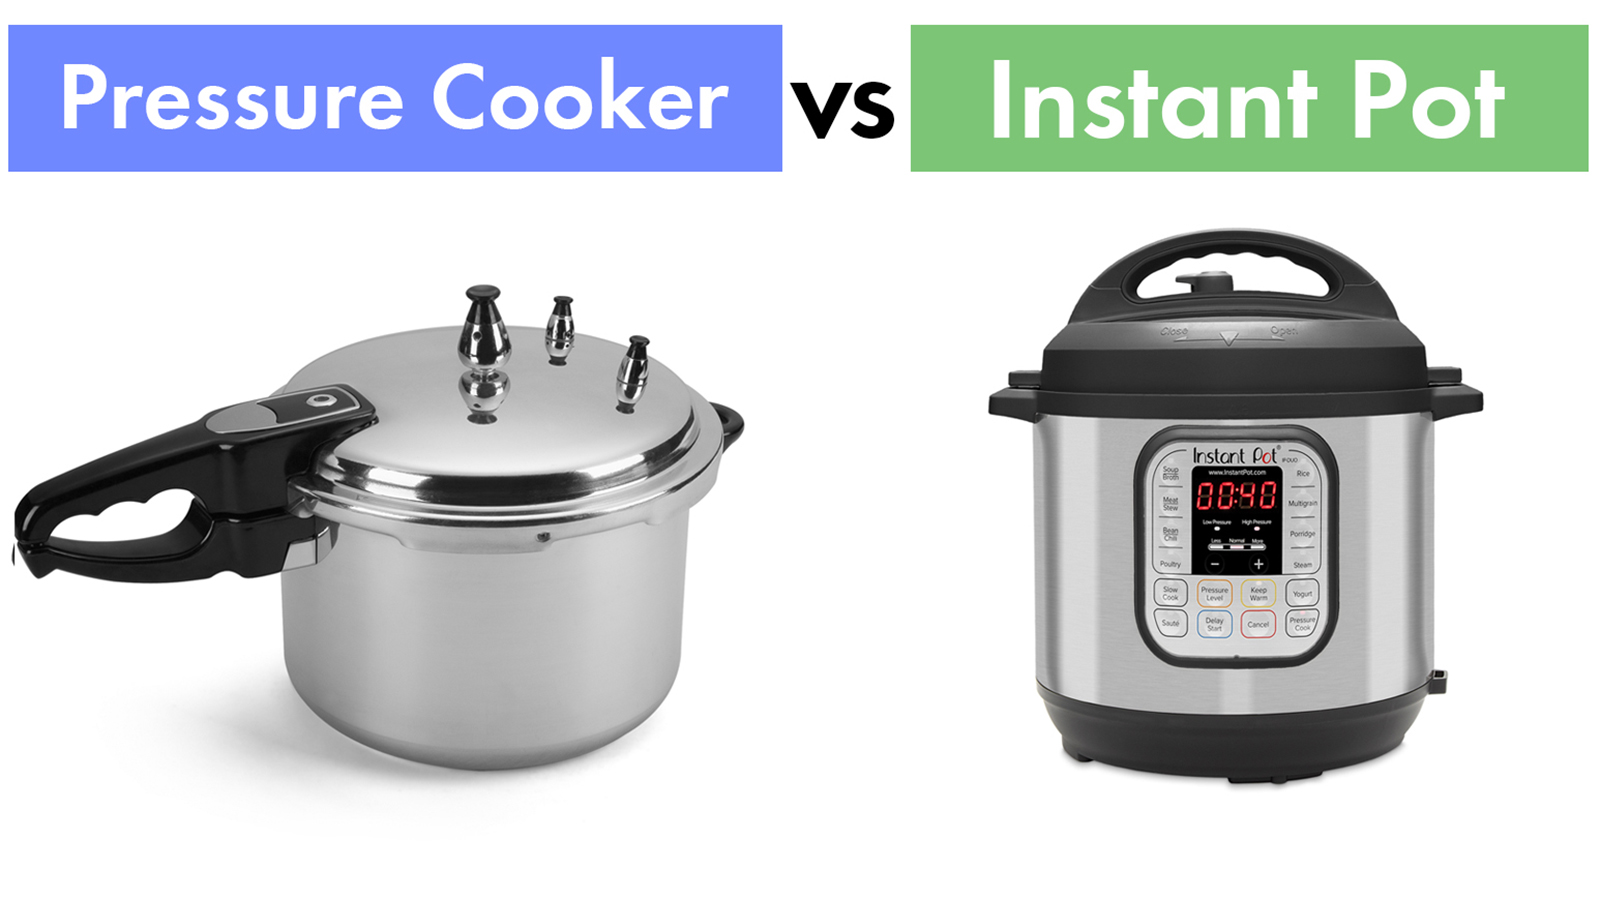 Instant pot vs. Pressure cooker